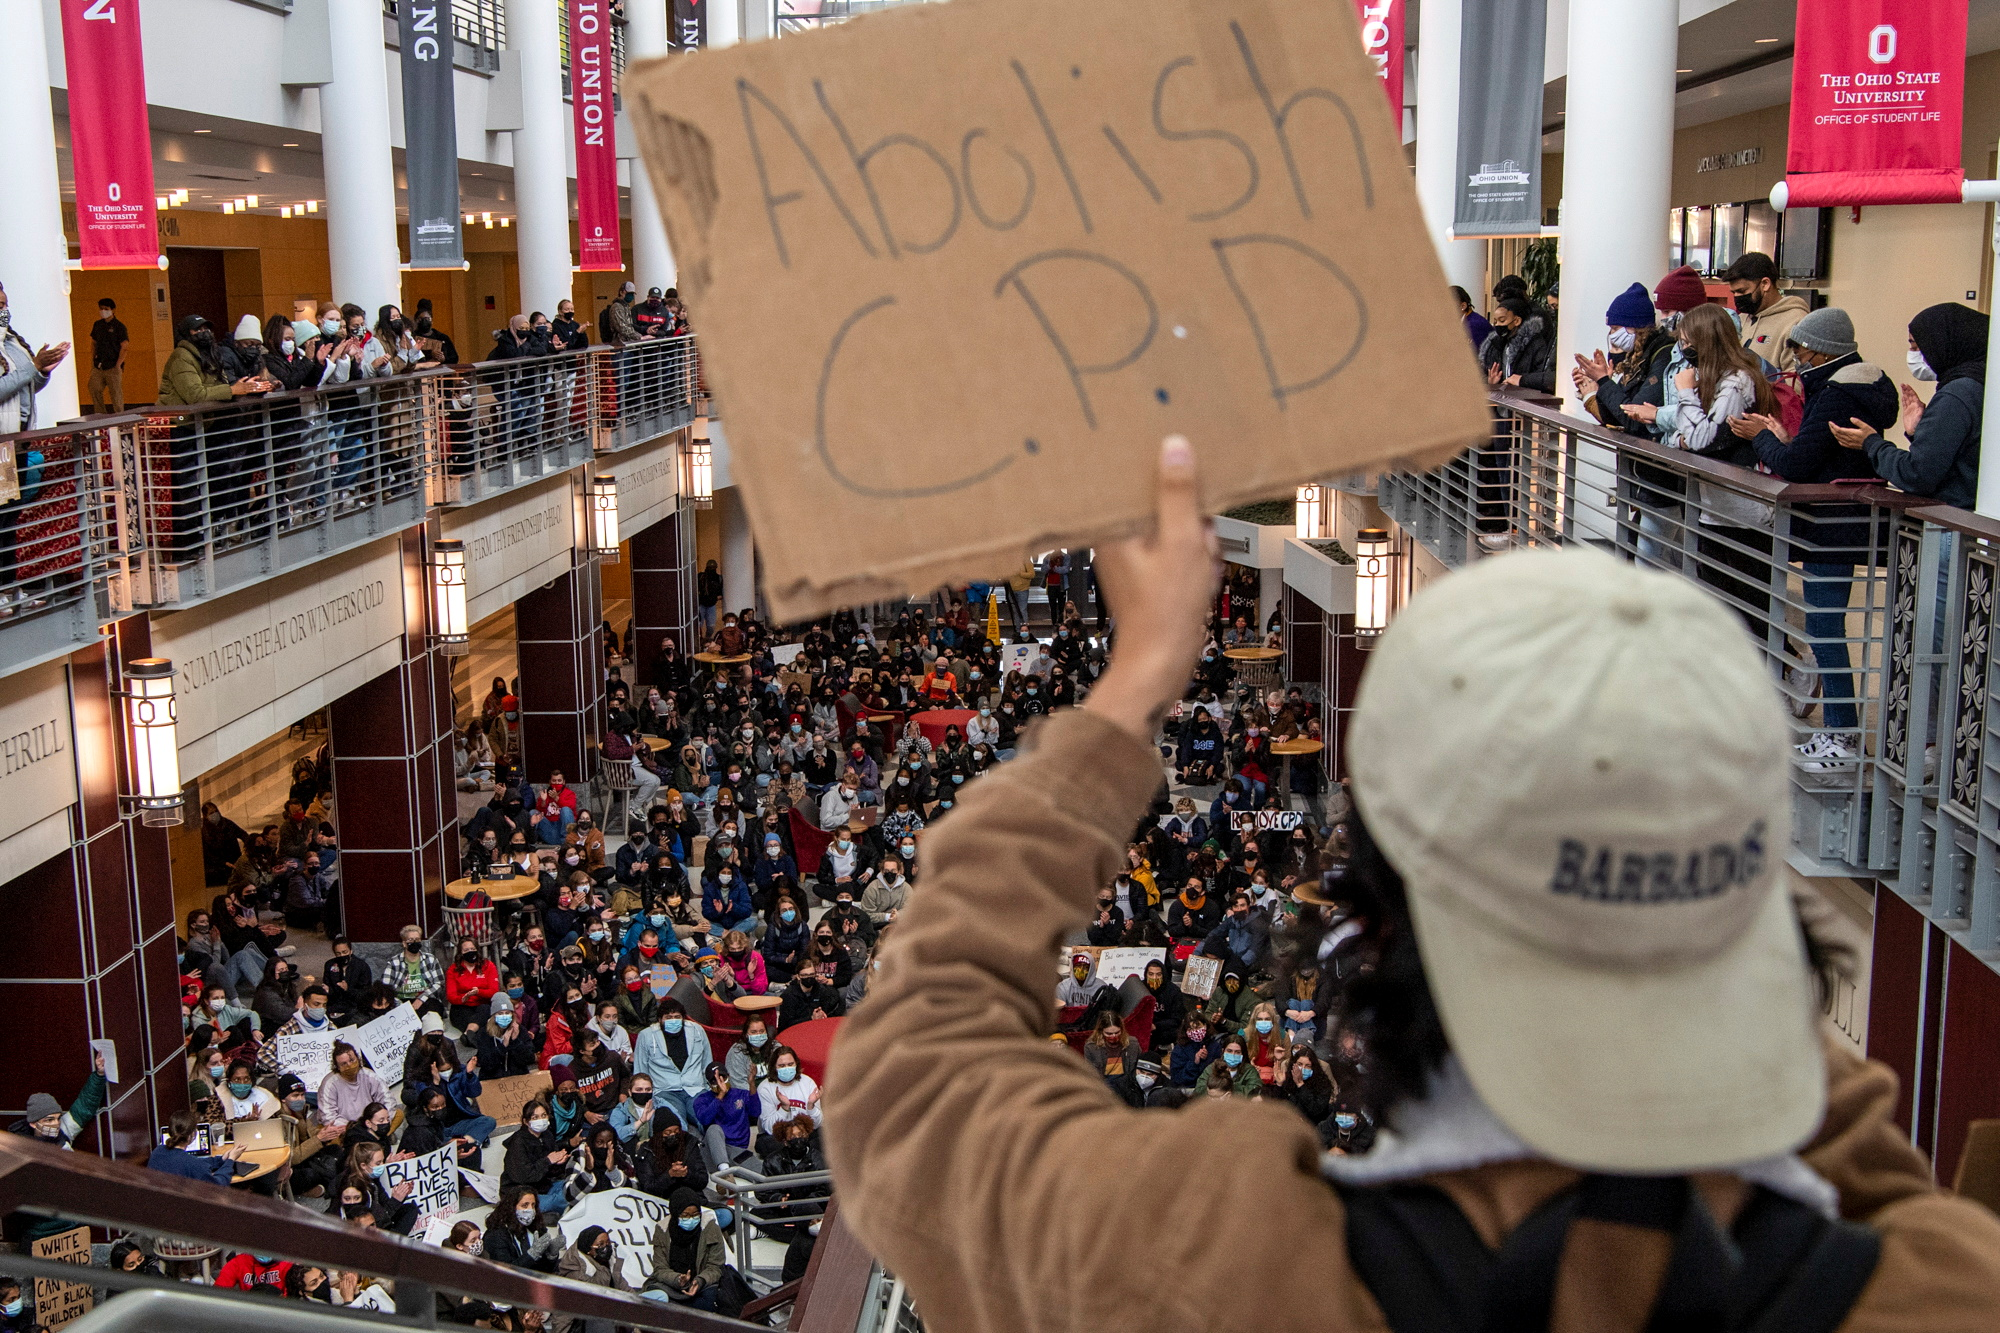 Ohio State University students hold a sit-in at the Ohio Union to demand that OSU sever ties with Columbus Police Department in the wake of the killing of 16-year-old Ma'Khia Bryant in Columbus, Ohio, U.S., April 21, 2021. REUTERS/Gaelen Morse